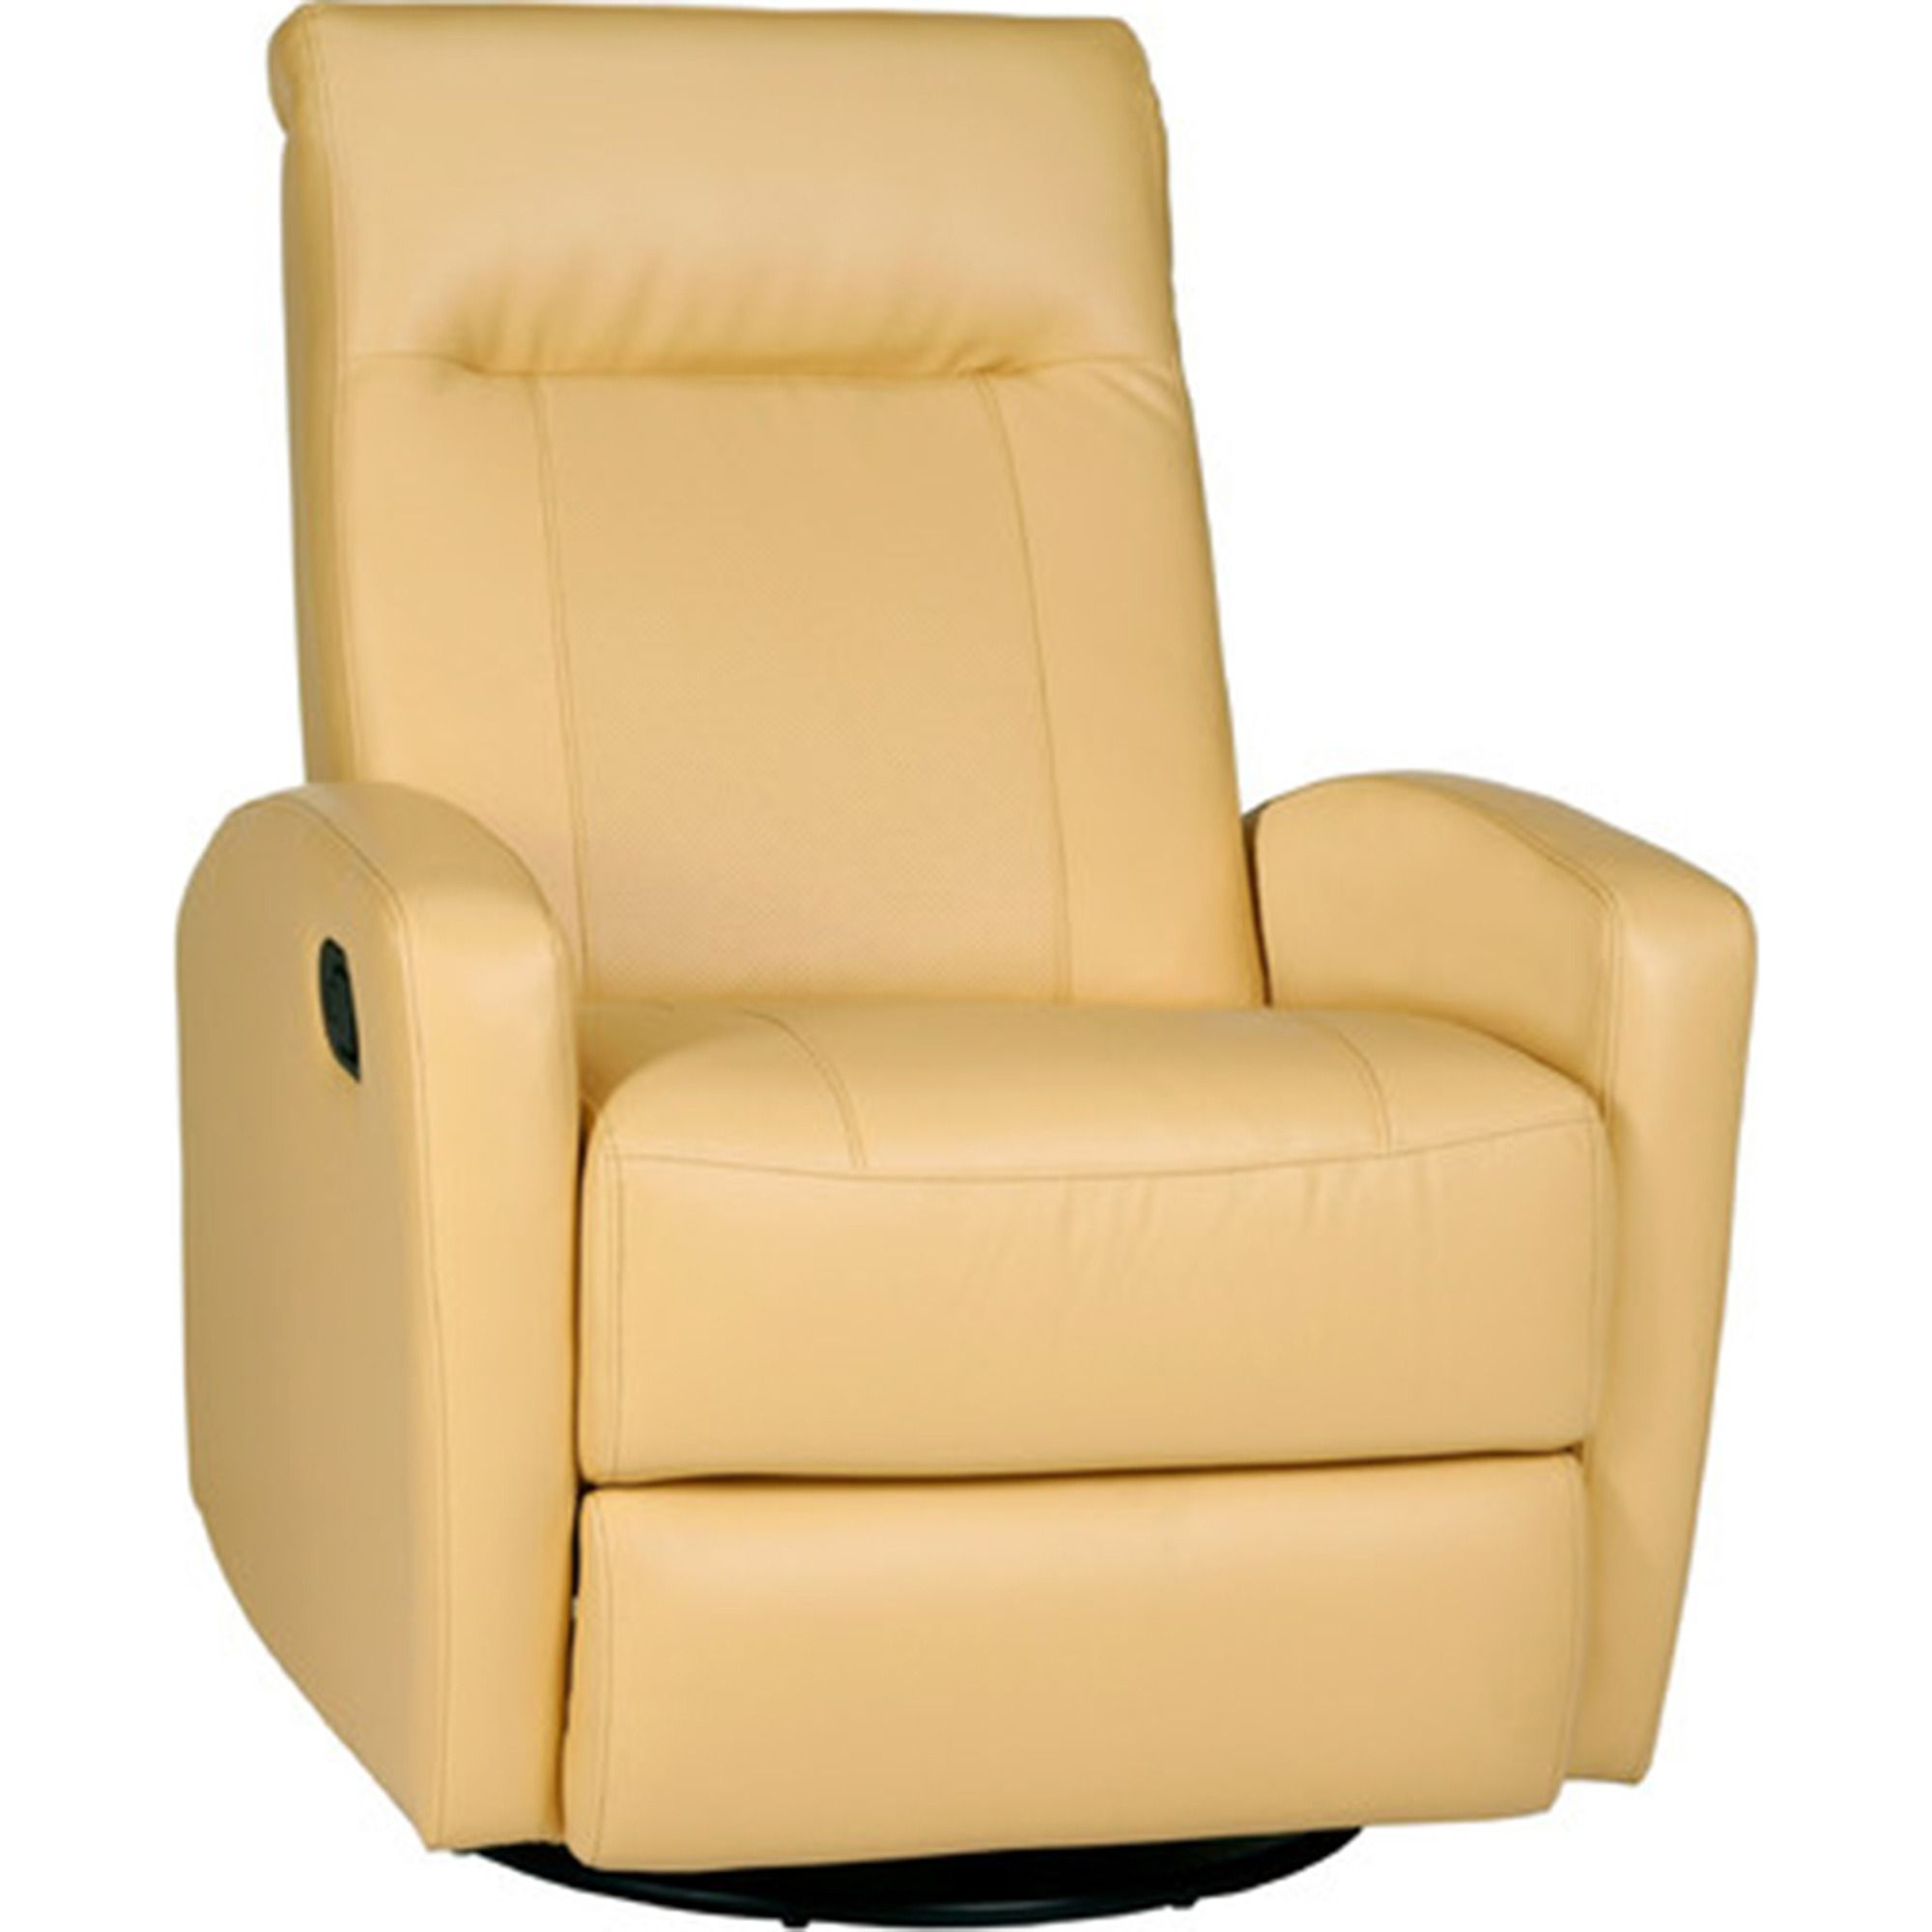 Stefan Swivel Glider Recliner in Gold   Opulence Home Furniture   Home  Gallery Stores